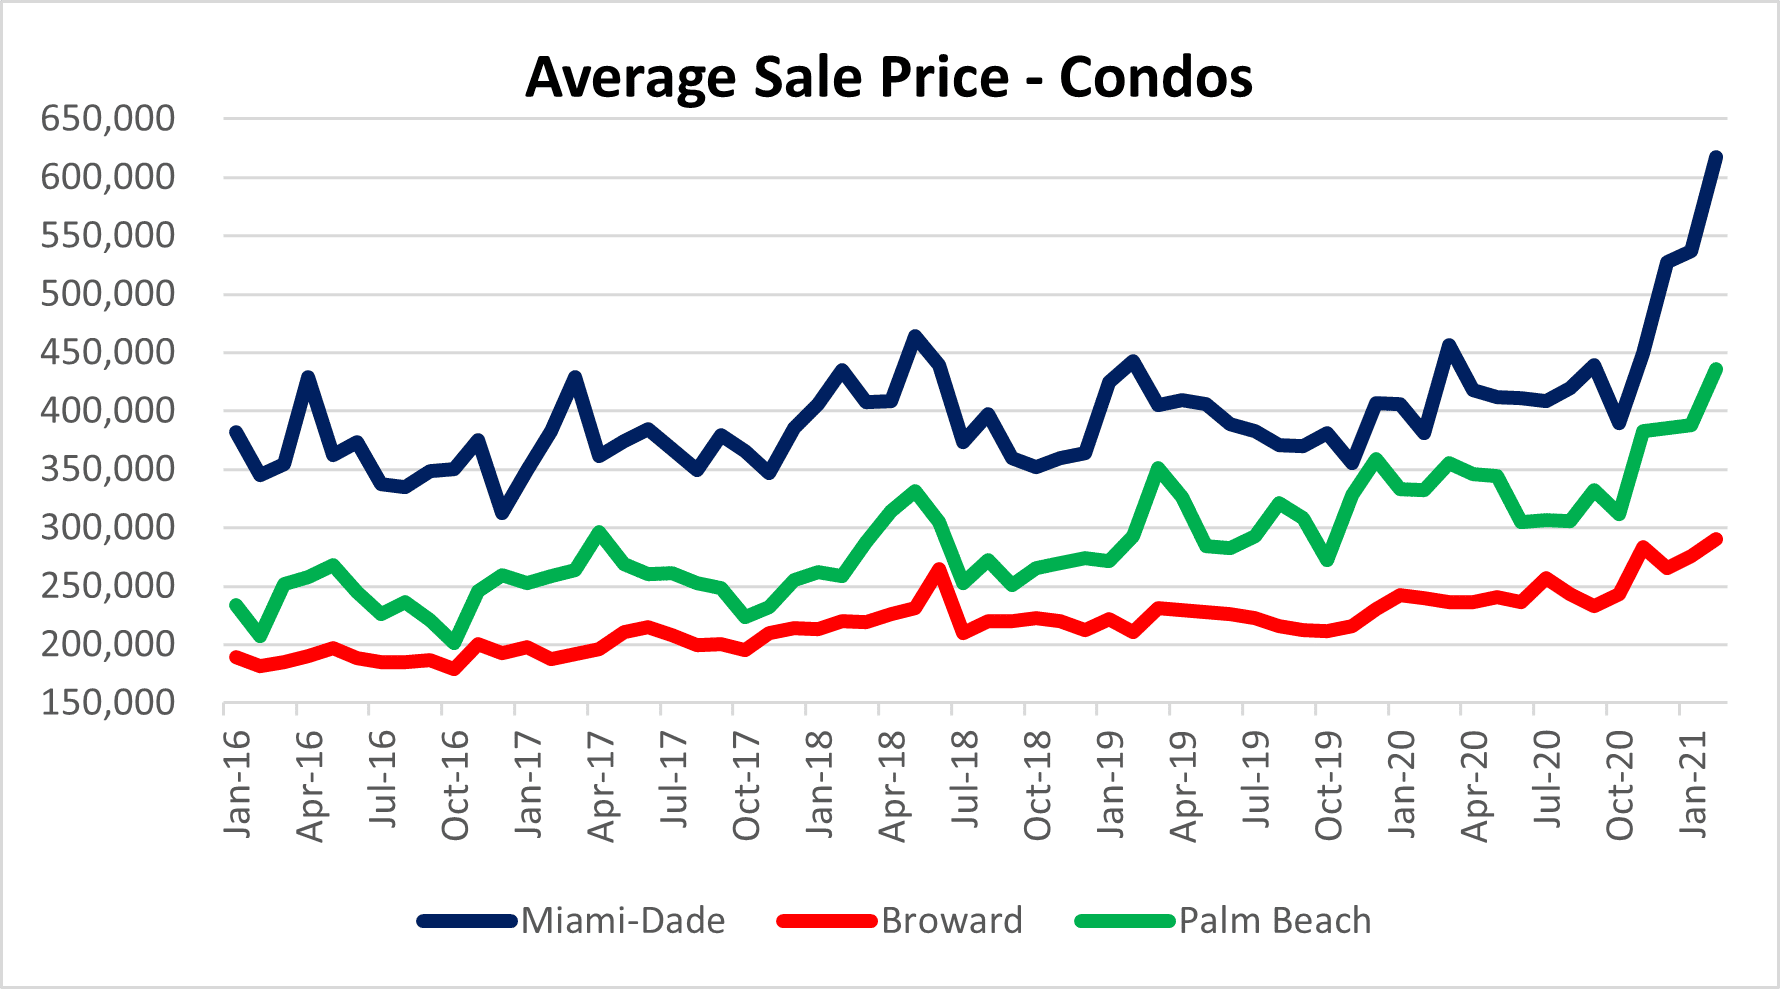 Condo prices in Miami, Fort Lauderdale and Palm Beach